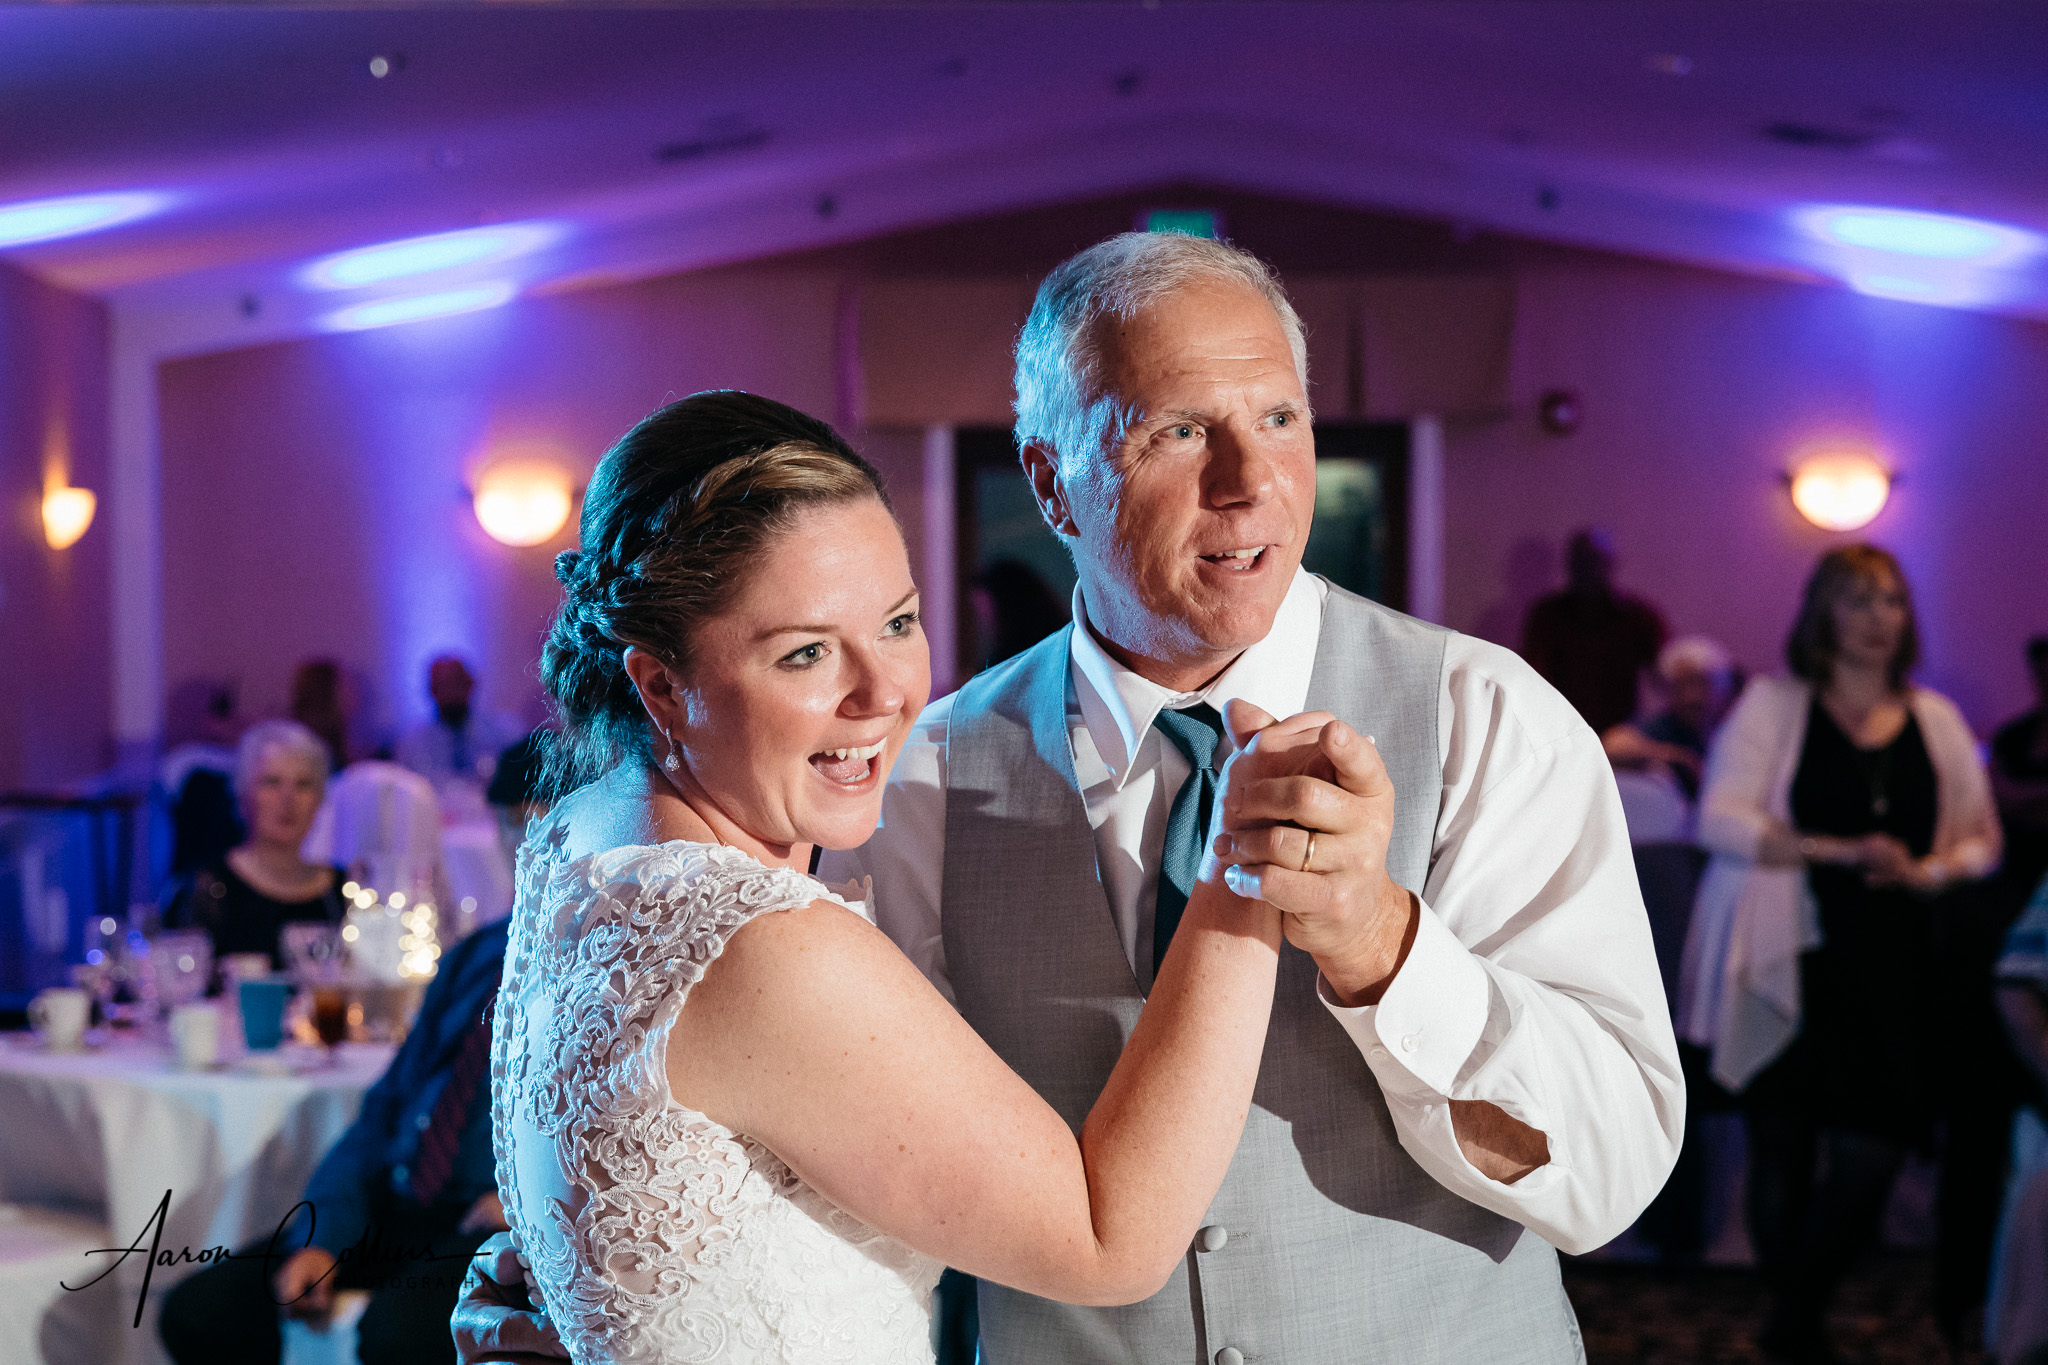 Leigh Ann and Jay Wedding, captured on May 19, 2018; at Red Jacket Inn, in Yarmouth, MA, by Aaron Collins Photography.